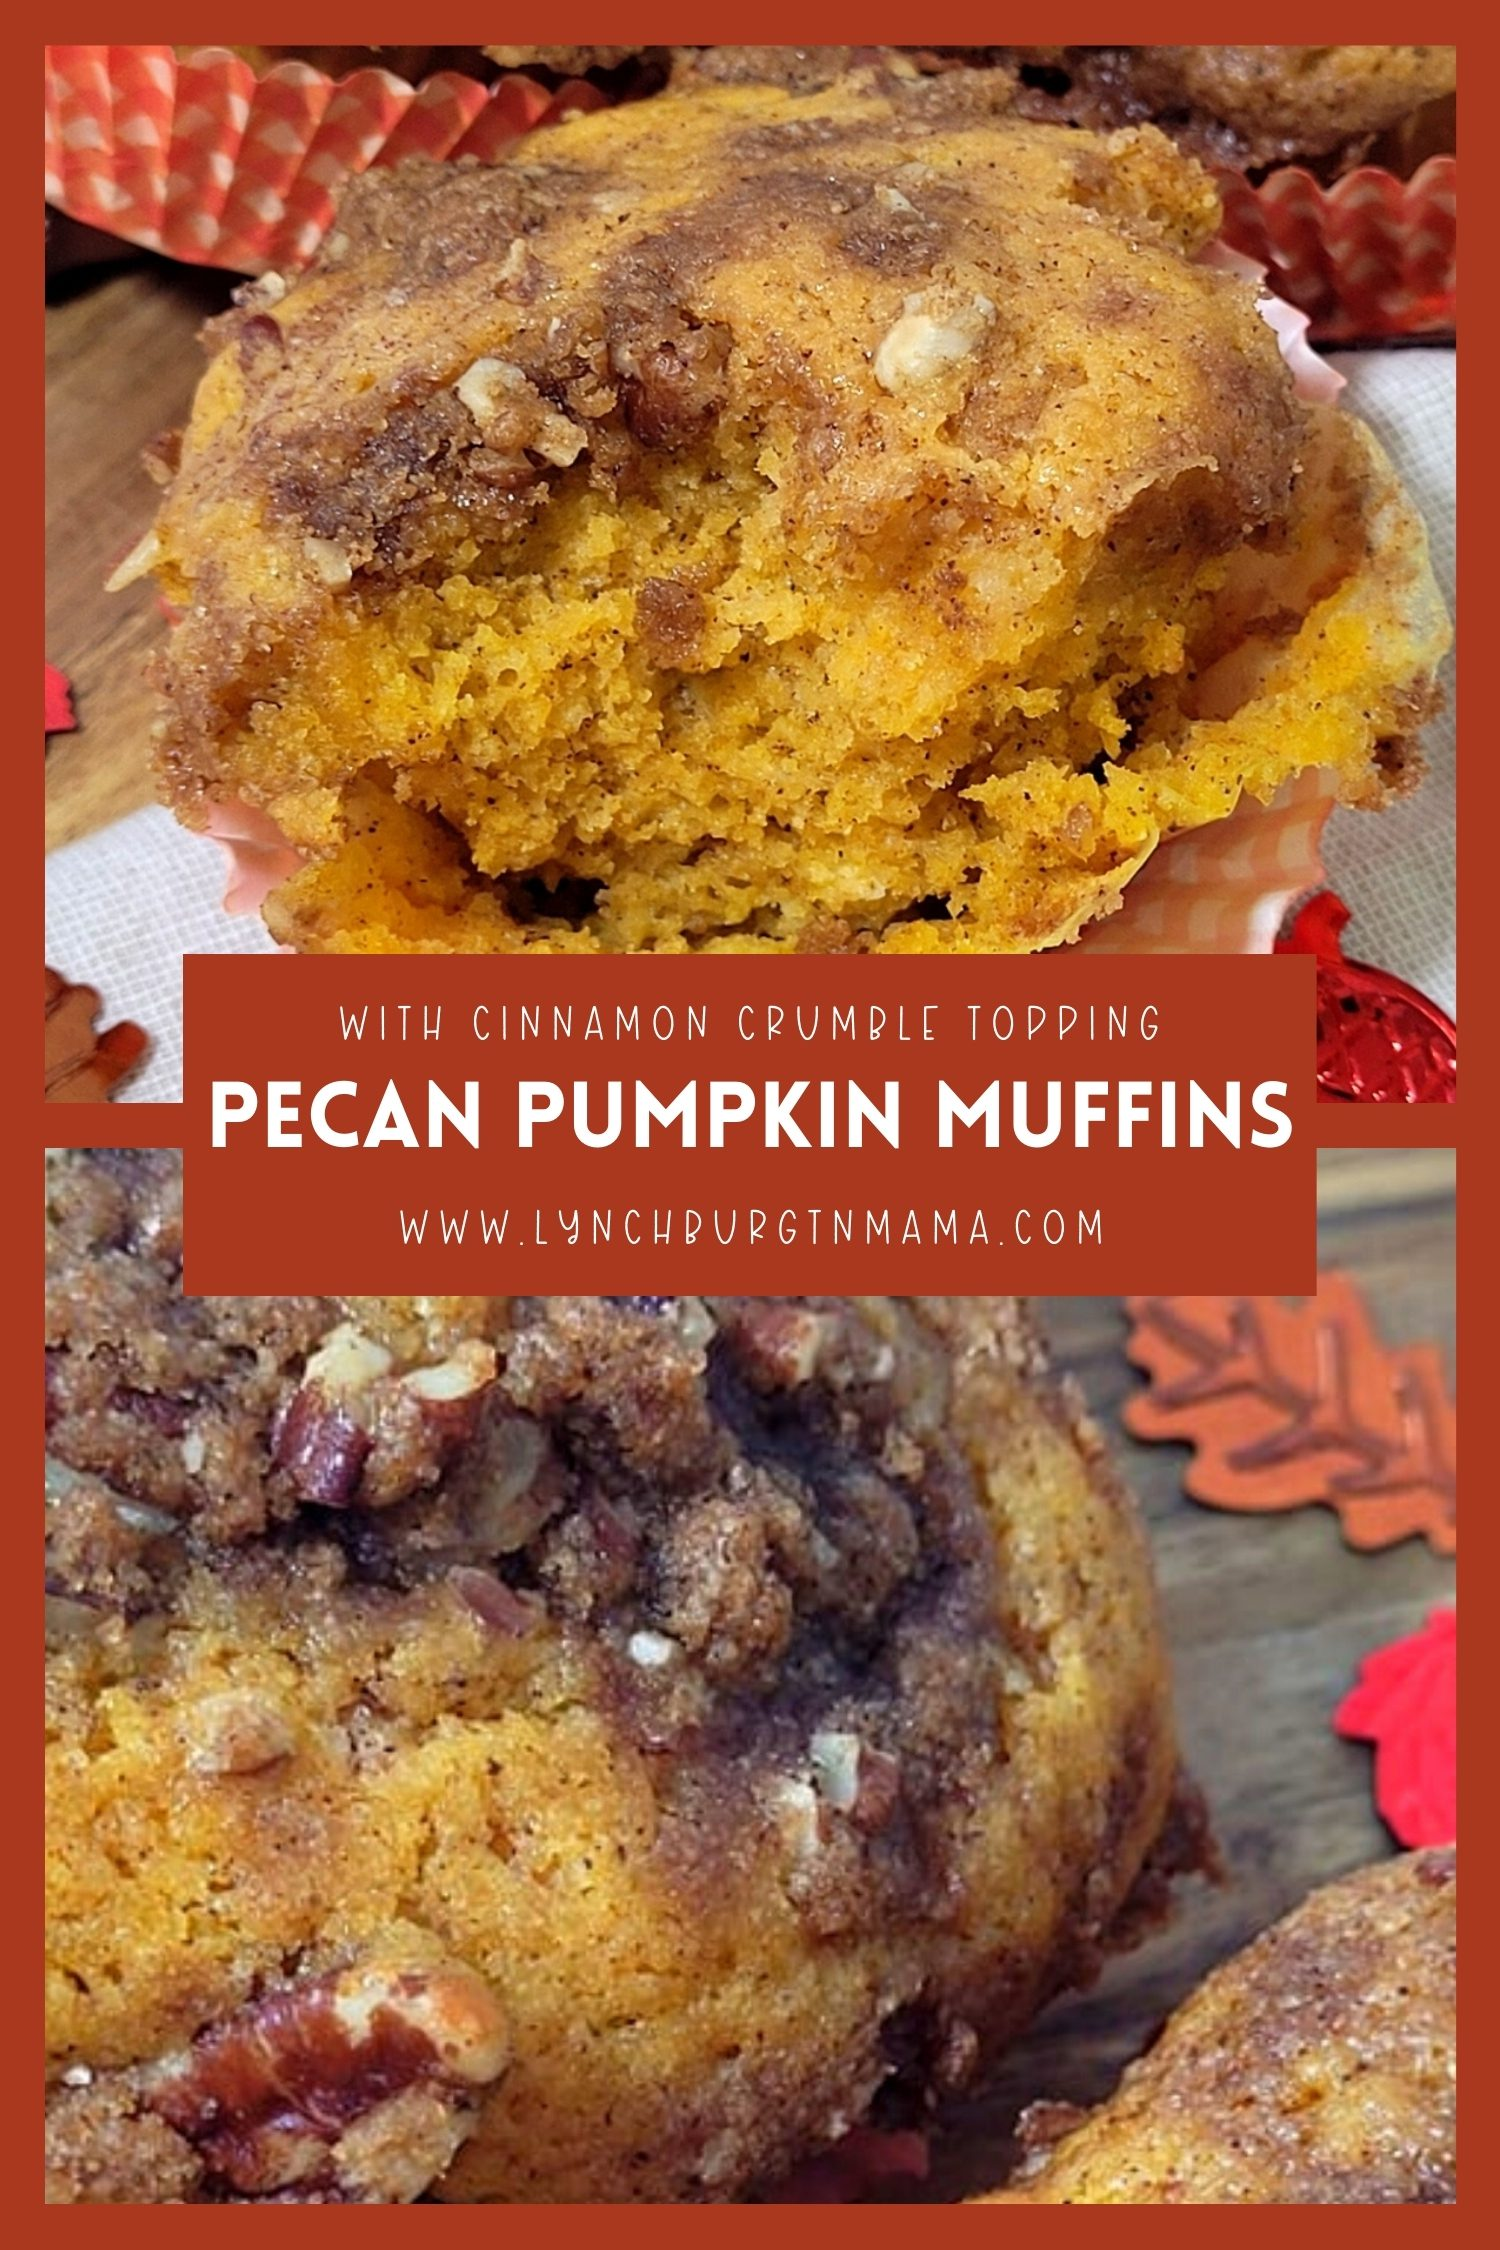 Pumpkin Pecan Muffins topped with a roasted Cinnamon Spice Crumble are the perfect way to welcome the fall! Enjoy the seasonal flavors in every bite.